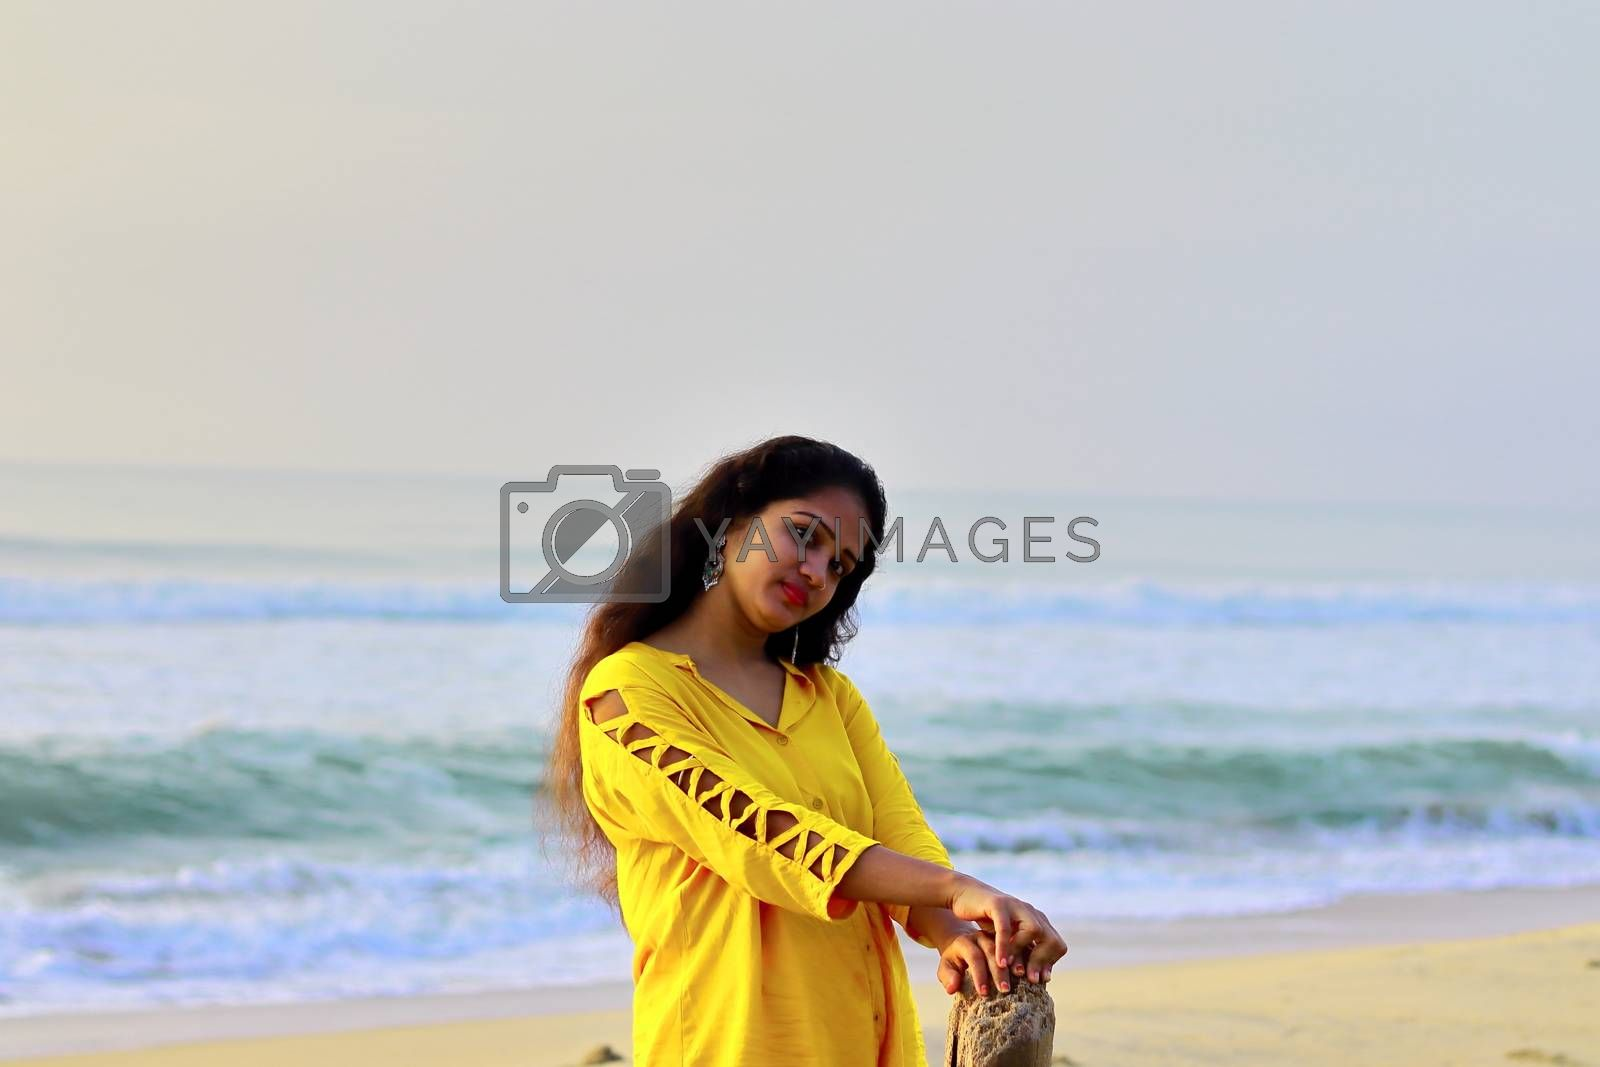 A stylish girl standing on the seashore holding a dry tree wood